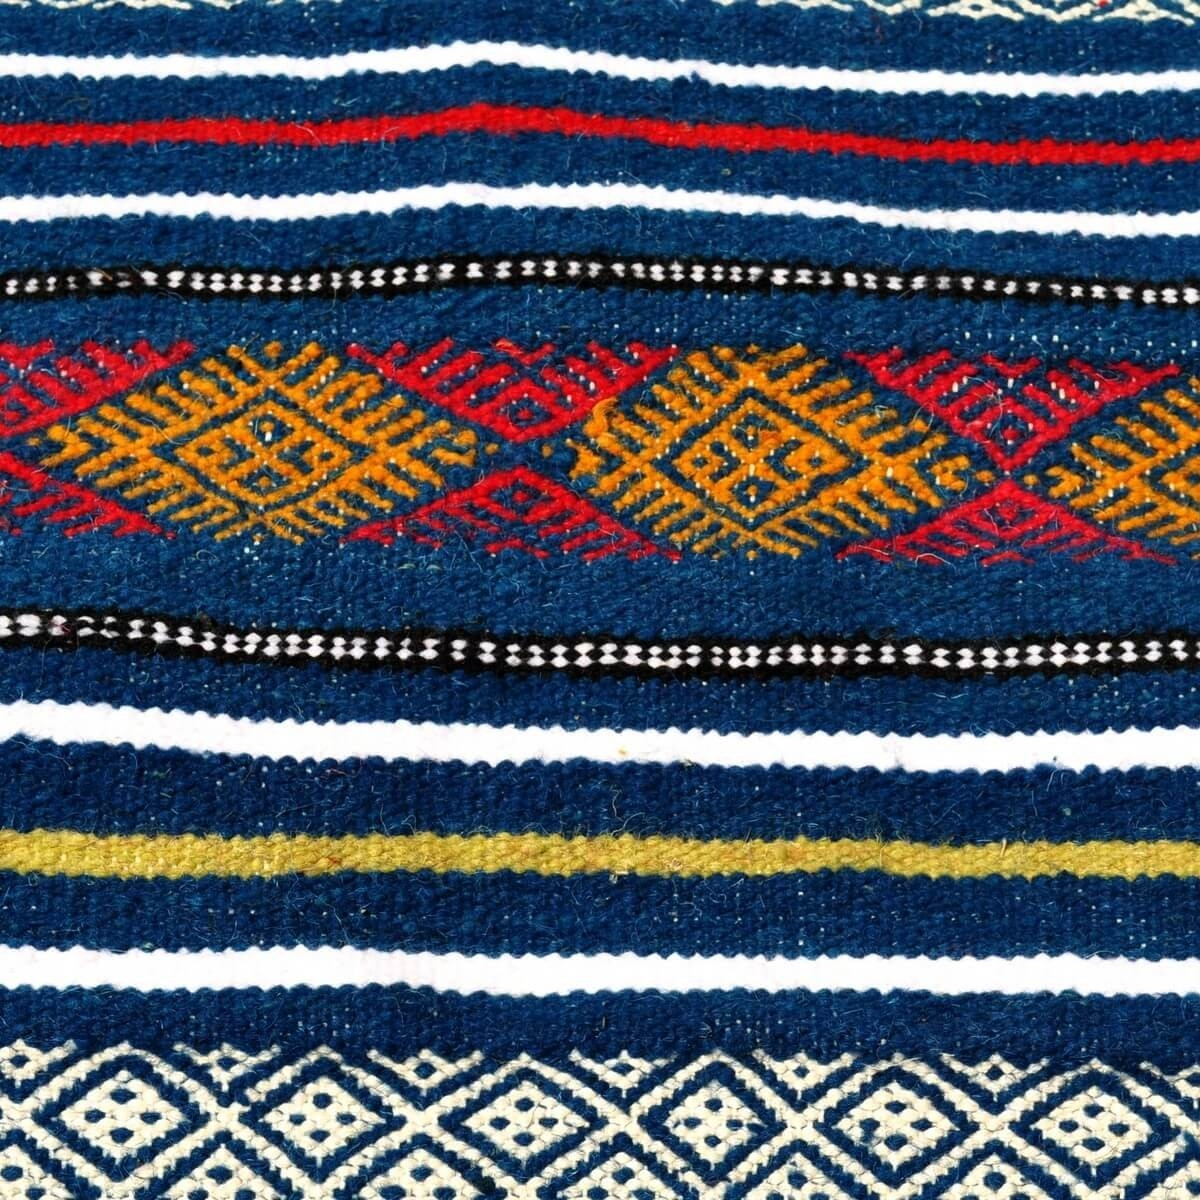 Berber carpet Rug Kilim Bargou 100x190 Blue/Yellow/Red (Handmade, Wool) Tunisian Rug Kilim style Moroccan rug. Rectangular carpe